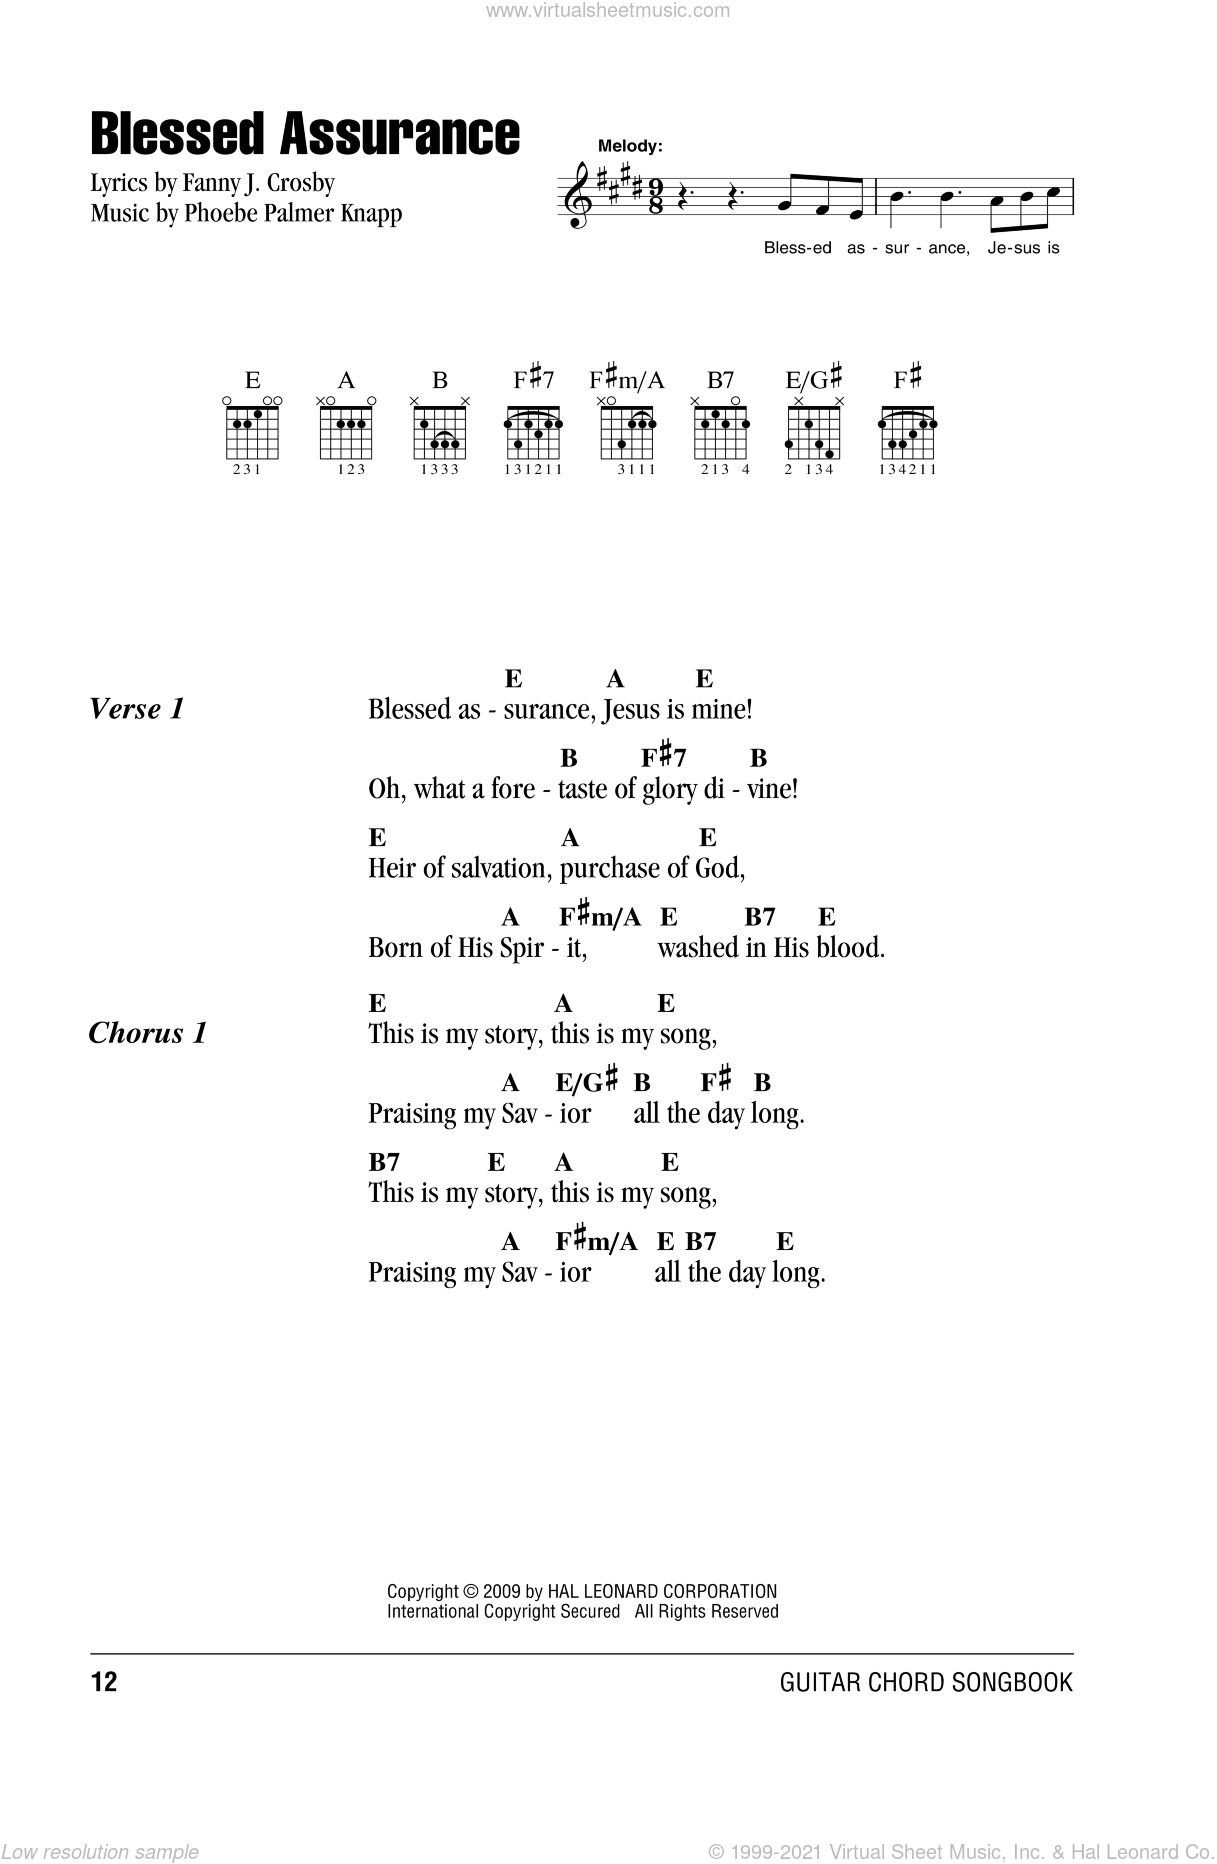 Crosby - Blessed Assurance sheet music for guitar (chords) [PDF]